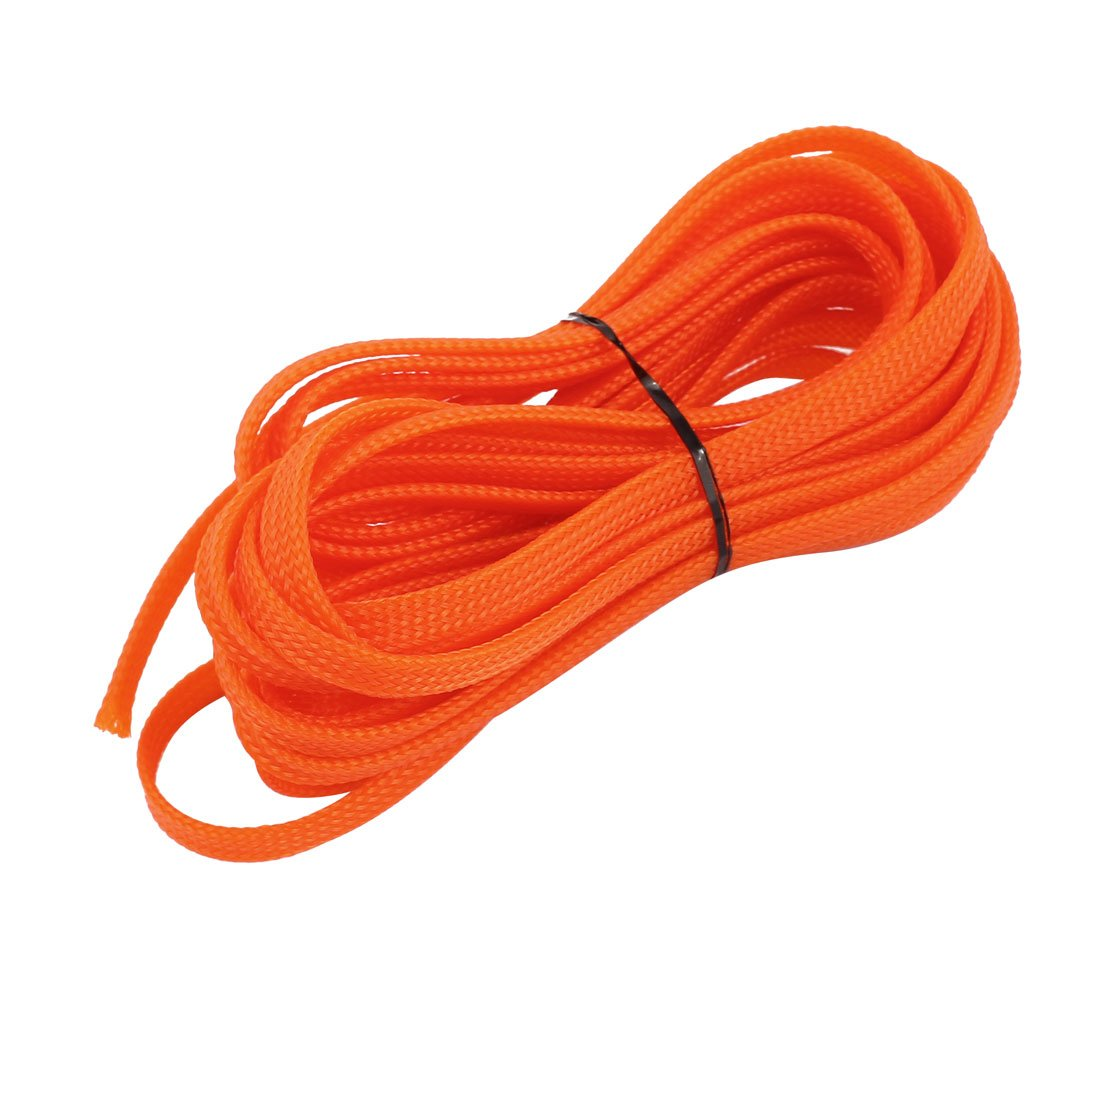 sourcing map PET Braided Sleeving 16.4 Feet 5m Expandable Cable Wrap 6mm Width Wire Sheath Orange a16101900ux1210